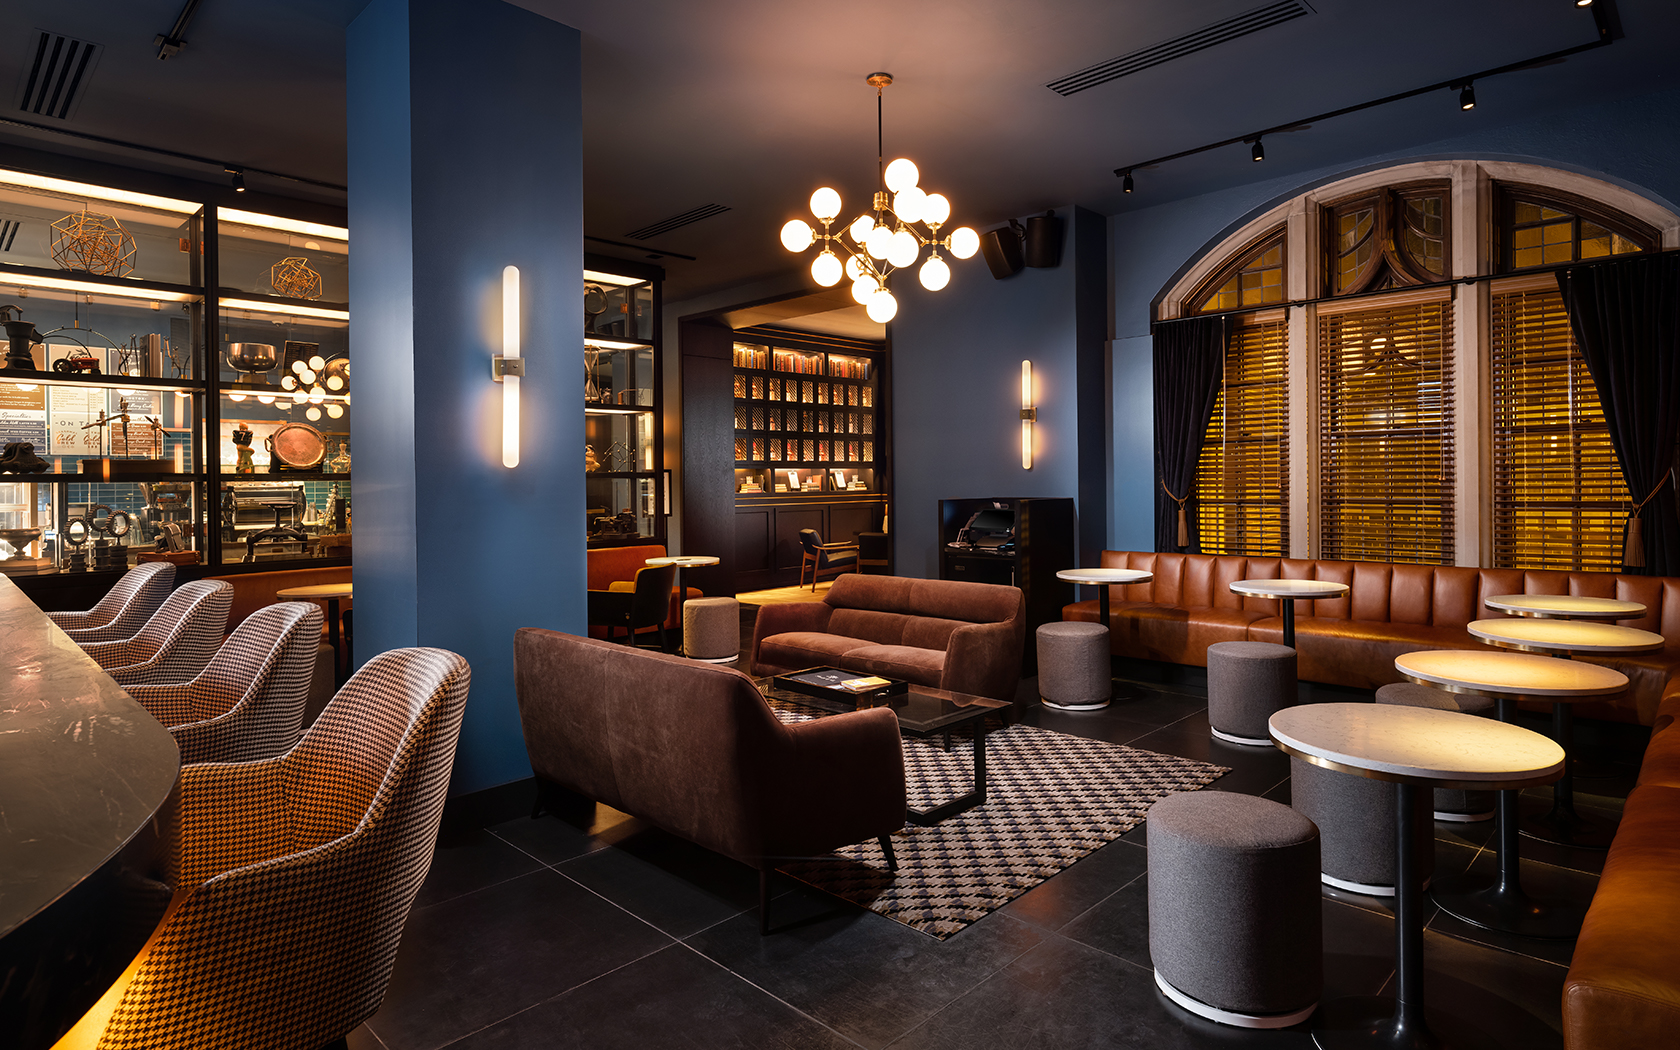 large bar seating area with blue walls